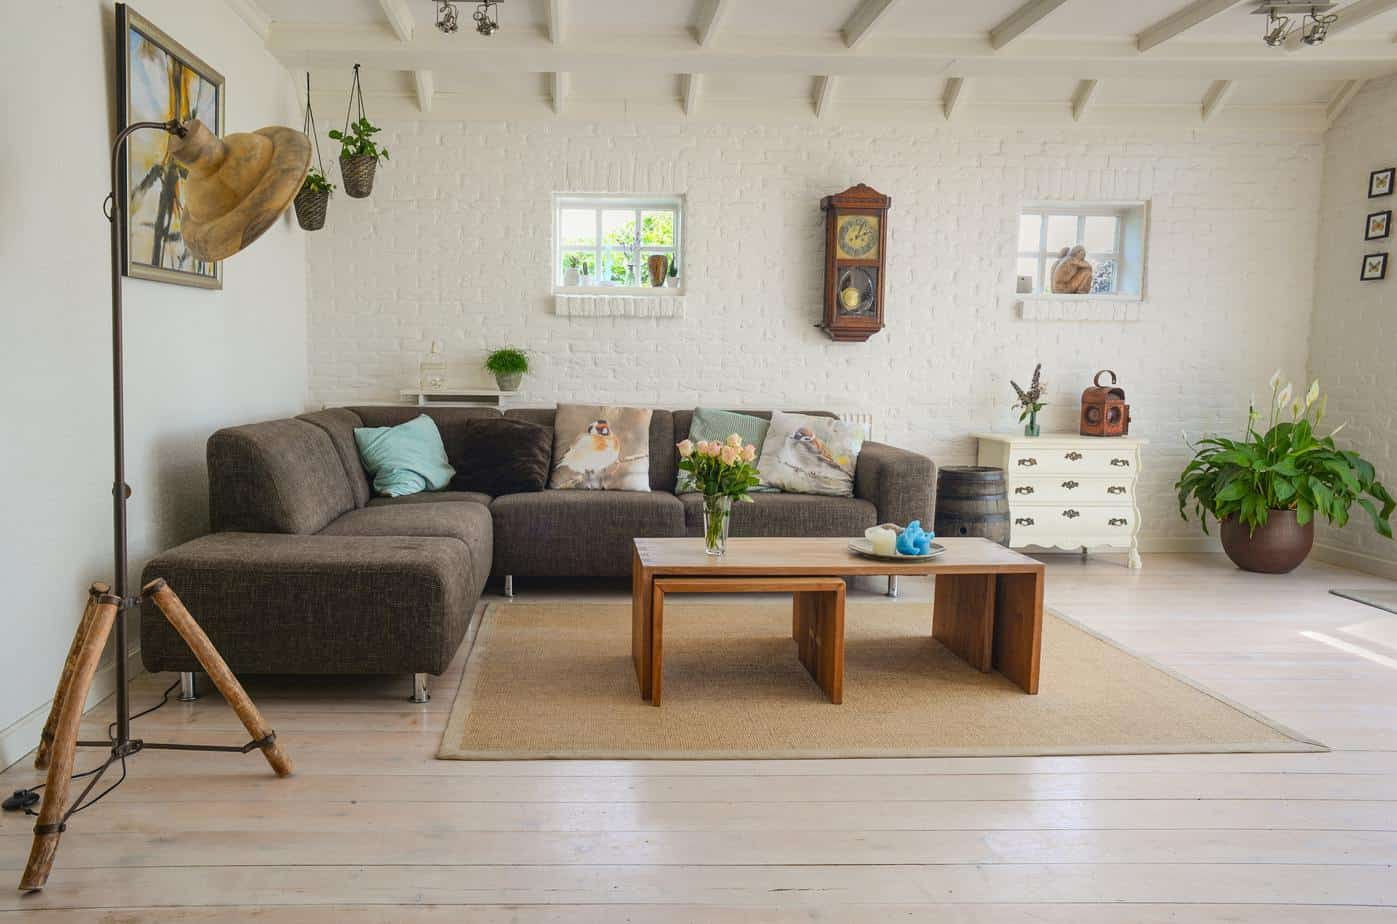 8 Finished Basement Ideas To Motivate Inspire The Change You Need In Your Basement Treasured Spaces